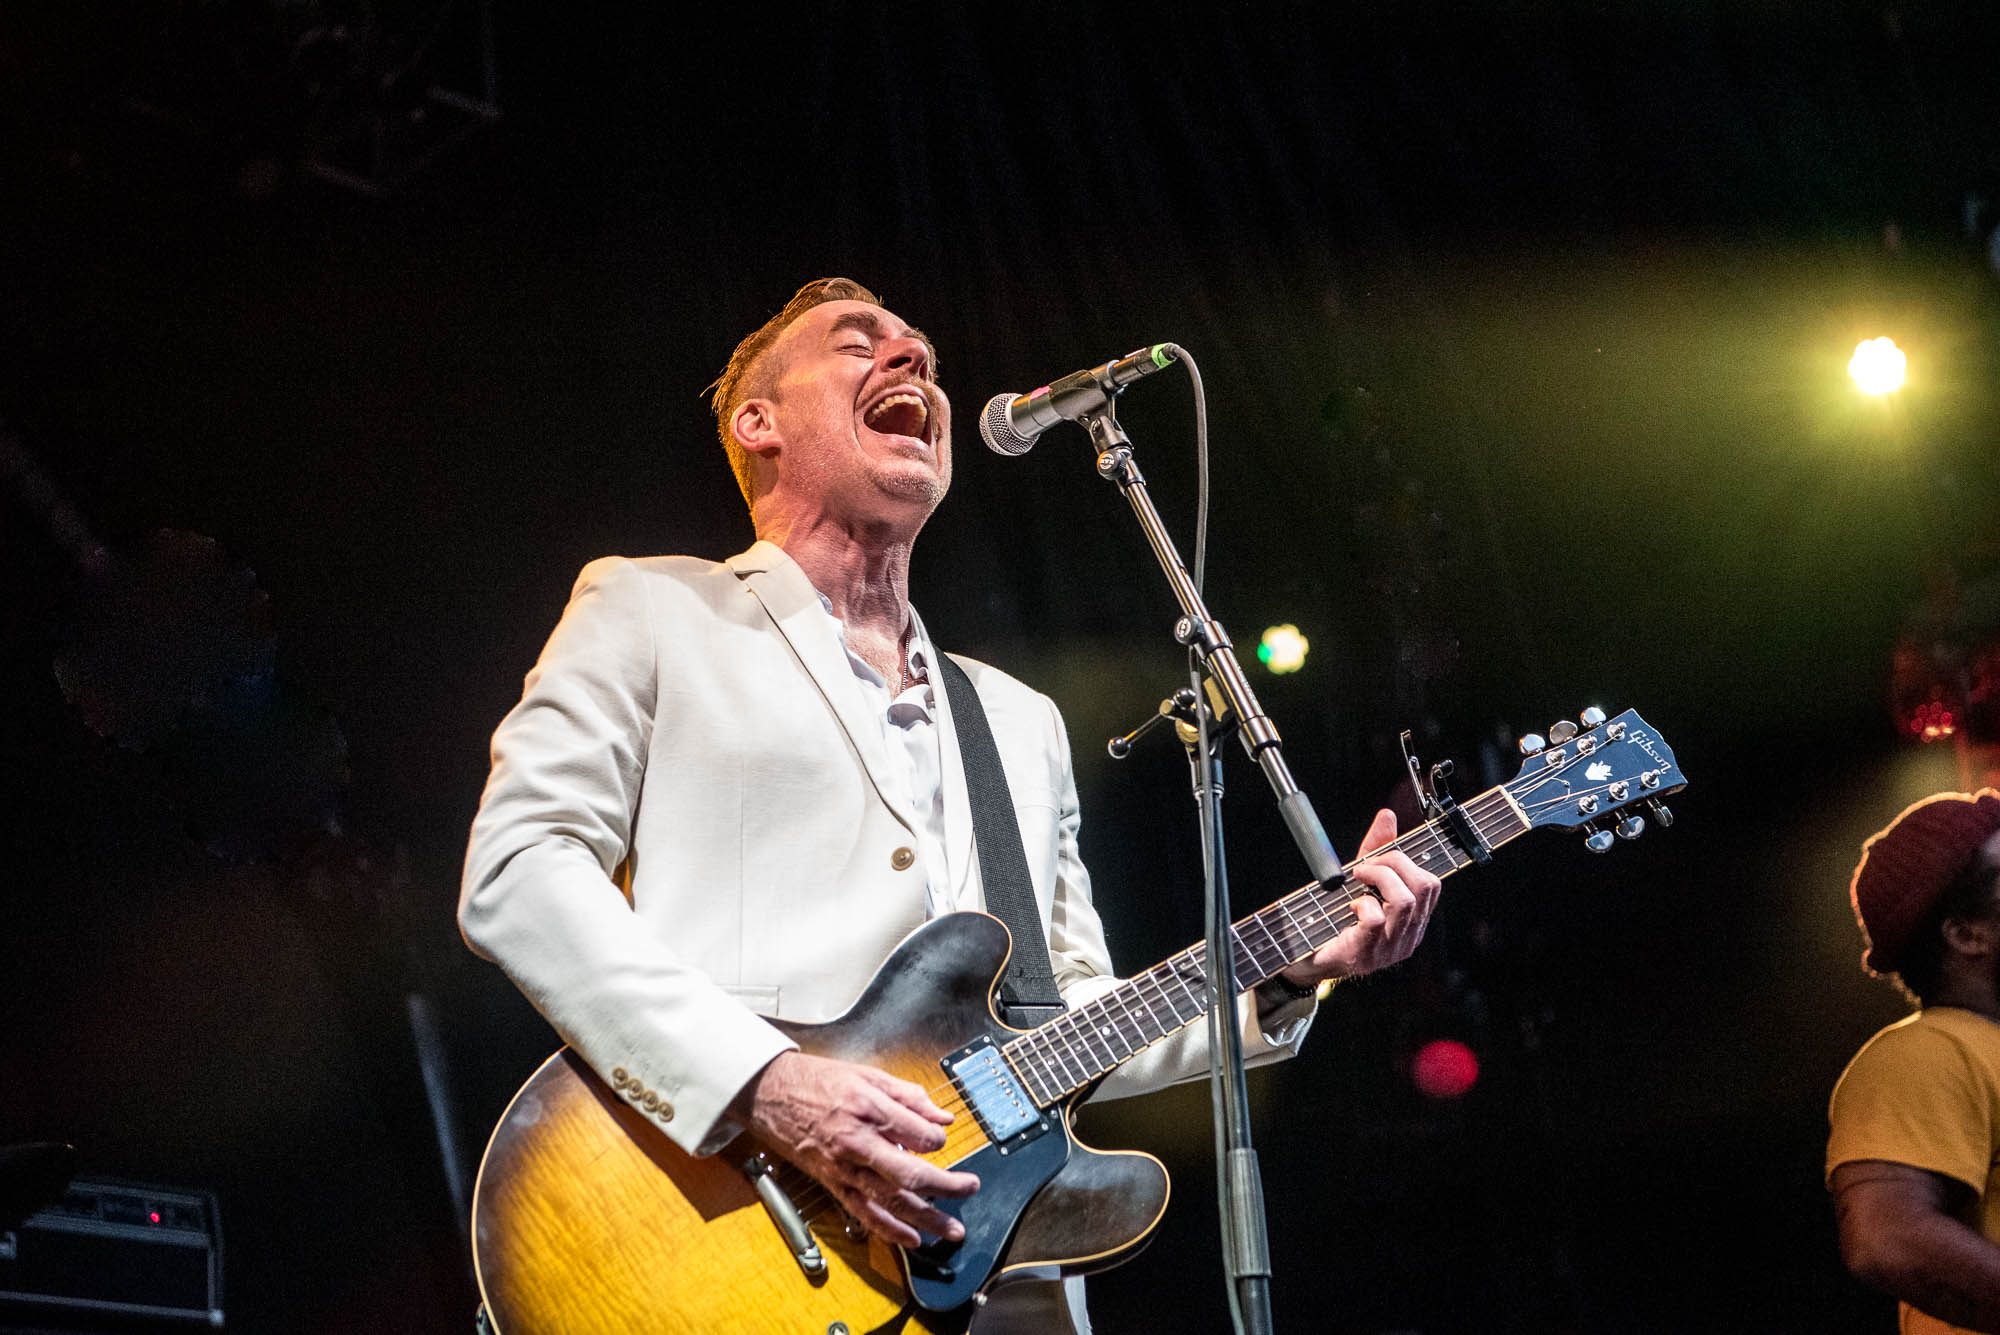 Ted Leo and the Pharmacists at BRIC Celebrate Brooklyn! at Prospect Park Bandshell on Saturday, June 29, 2019.